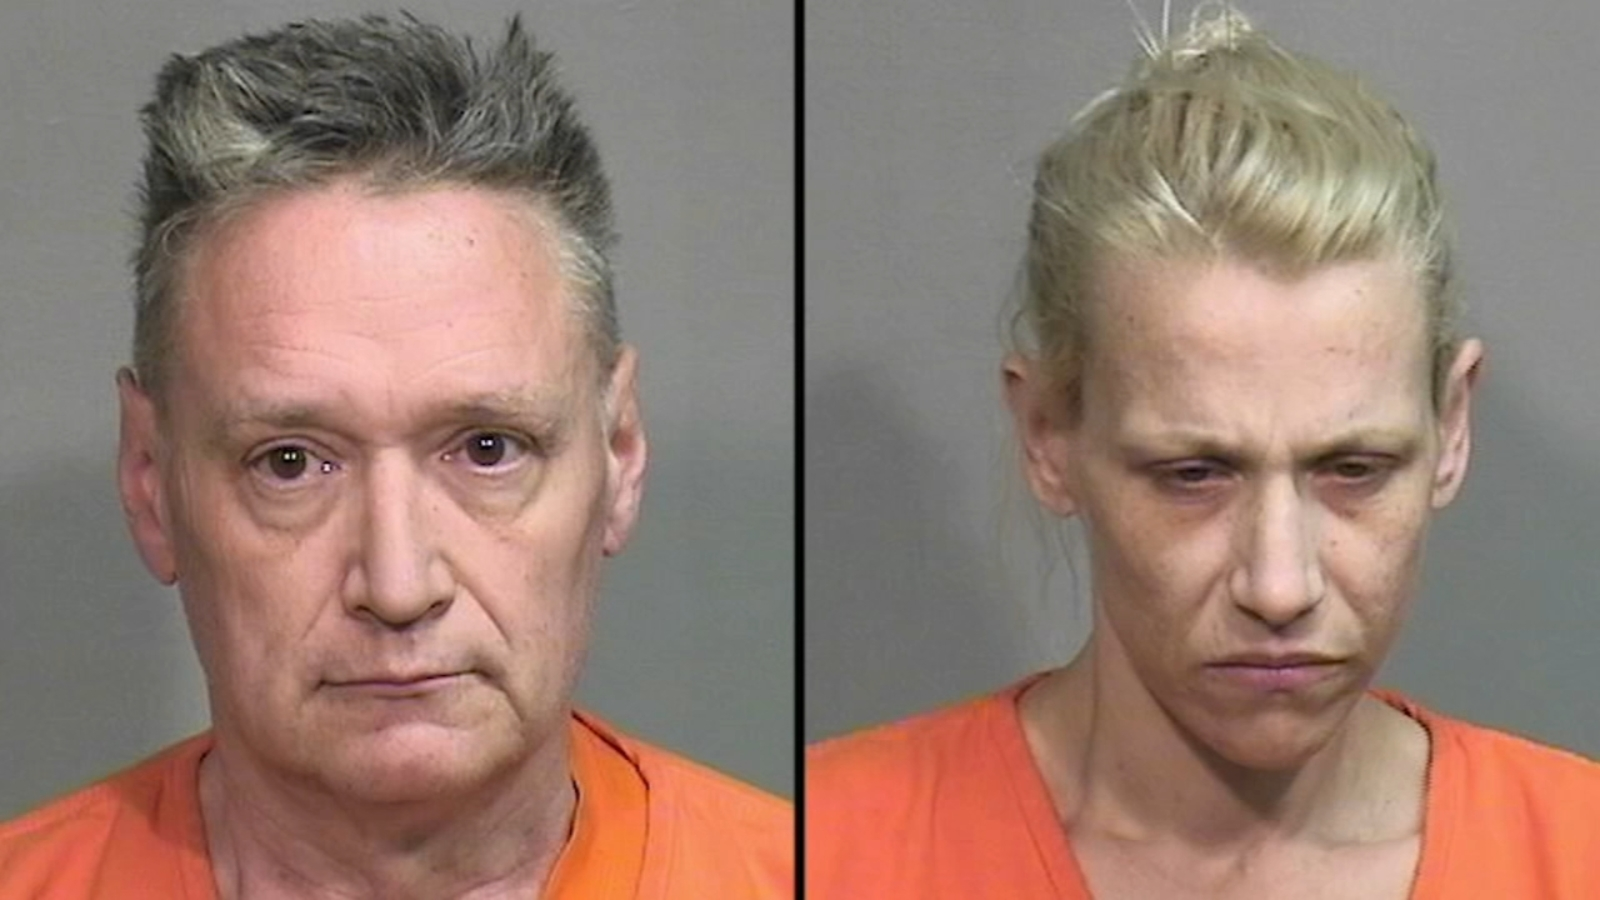 Grand jury indicts parents of slain Crystal Lake 5-year-old AJ Freund; court hearing scheduled